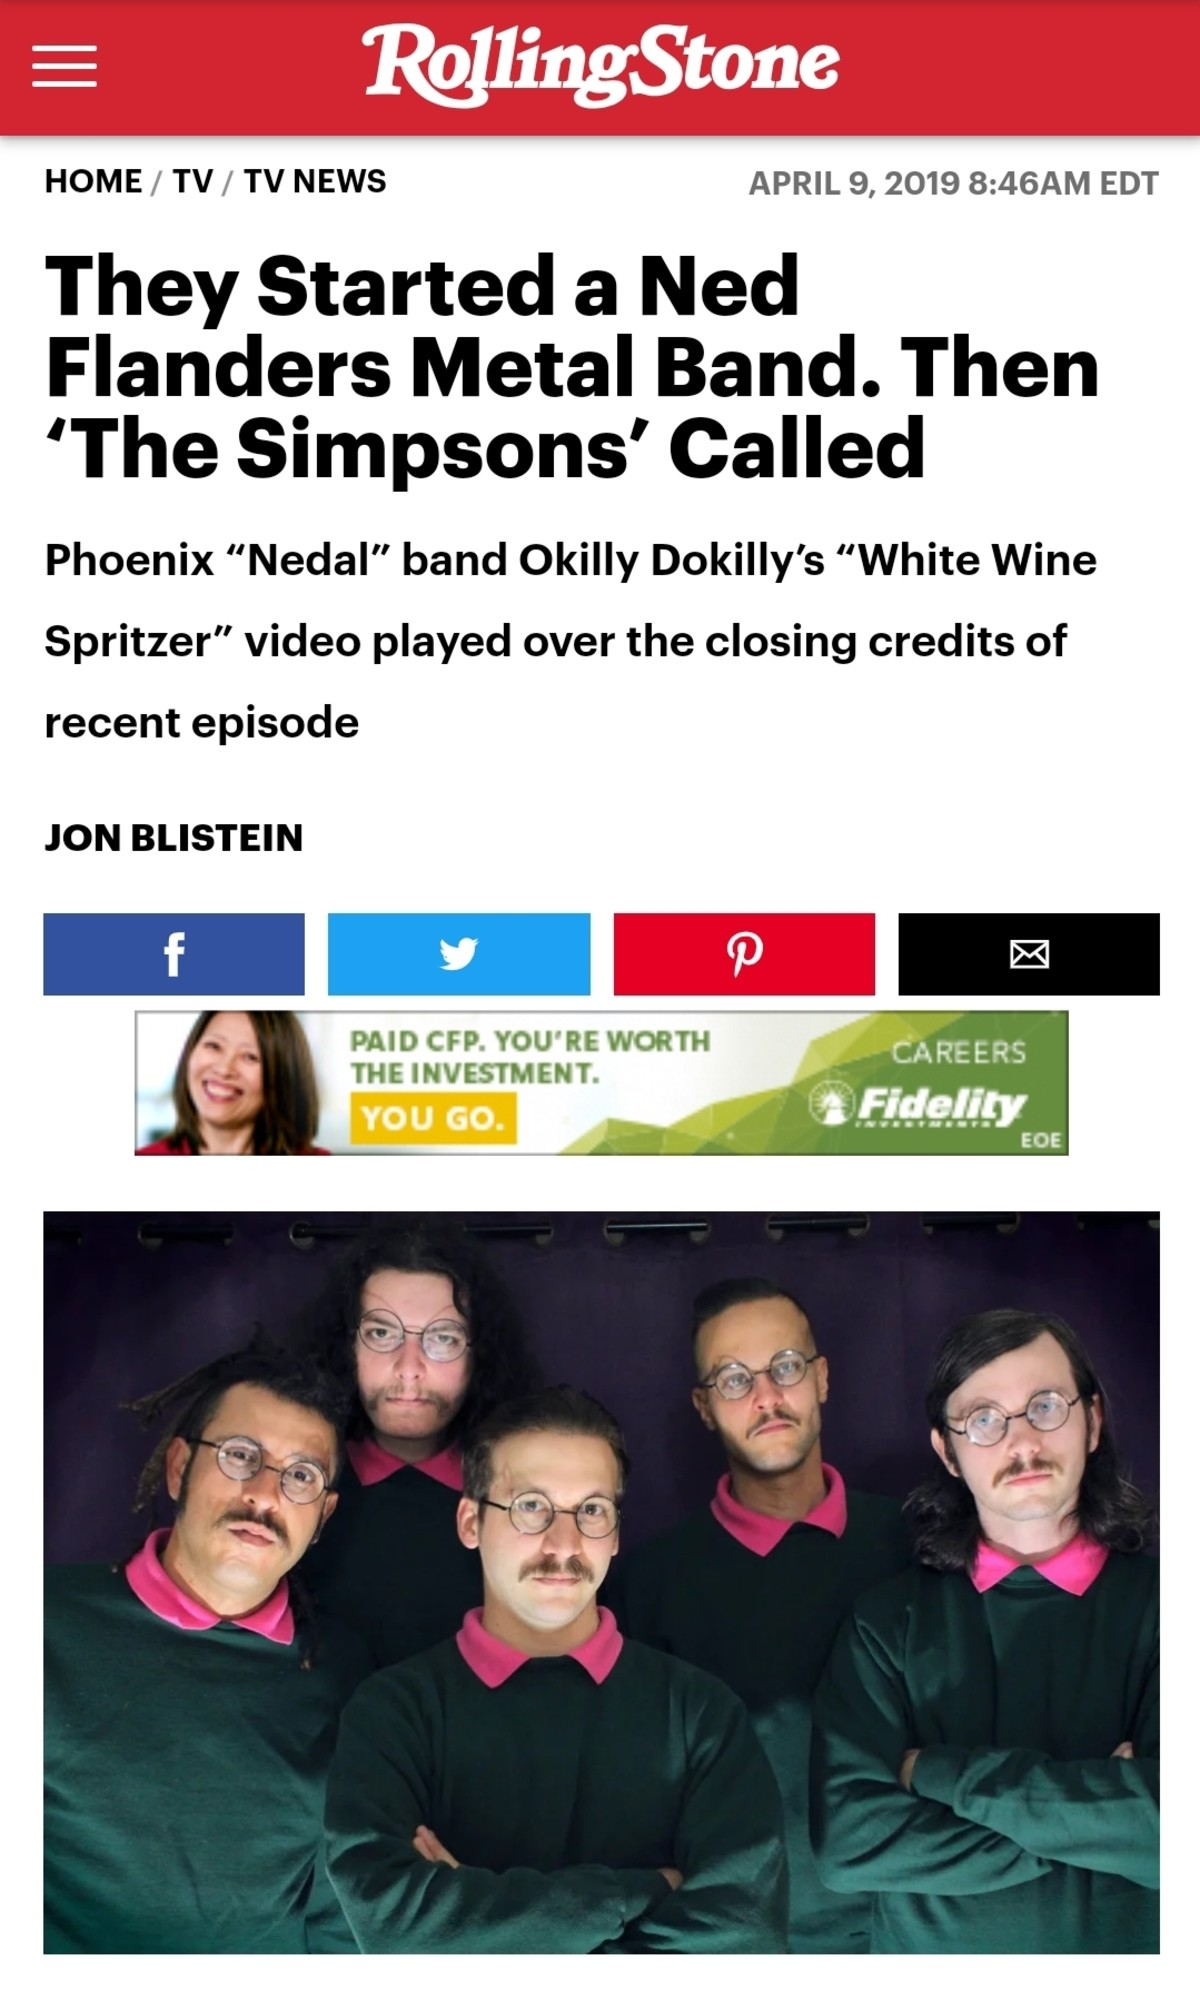 Okilly Dokilly. https://www.rollingstone.com/tv/tv-news/ned-flanders-metal-band-okilly-dokilly-the-simpsons-819321/.. at least post the video ya dingus